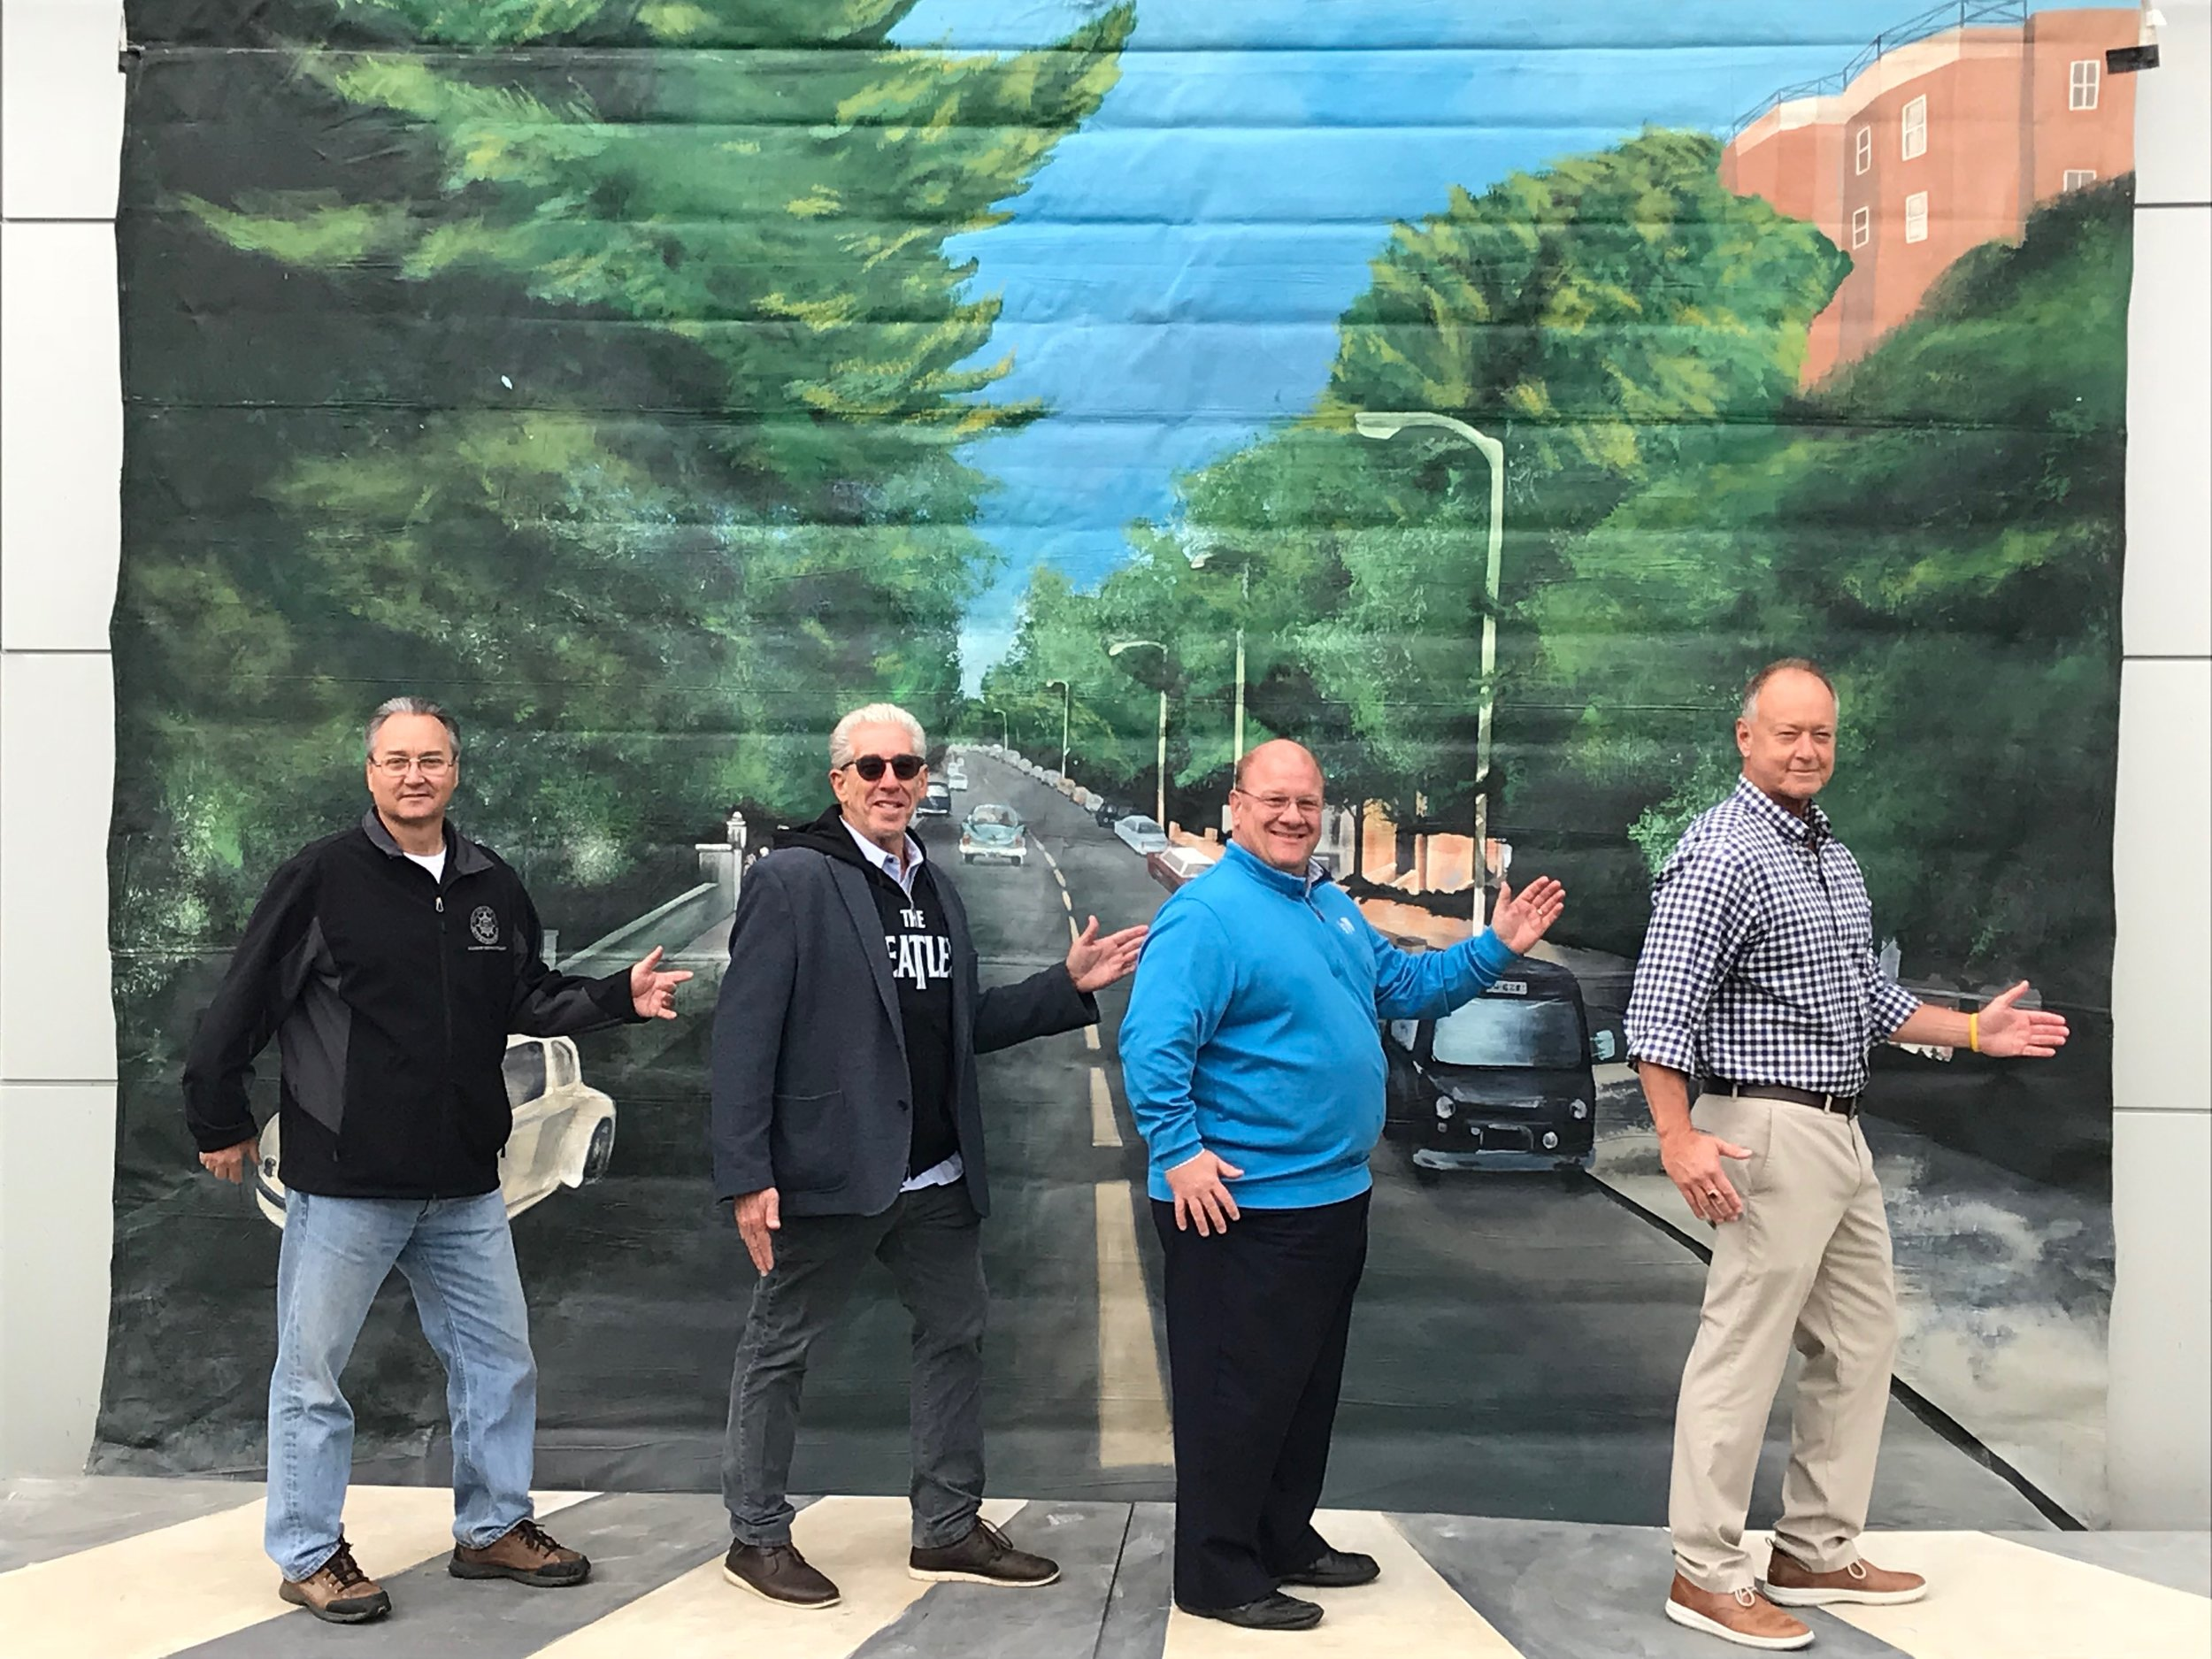 Abbey Road on the River extends its stay in Jeffersonville for five more years! - October 25, 2018 - News & Tribune